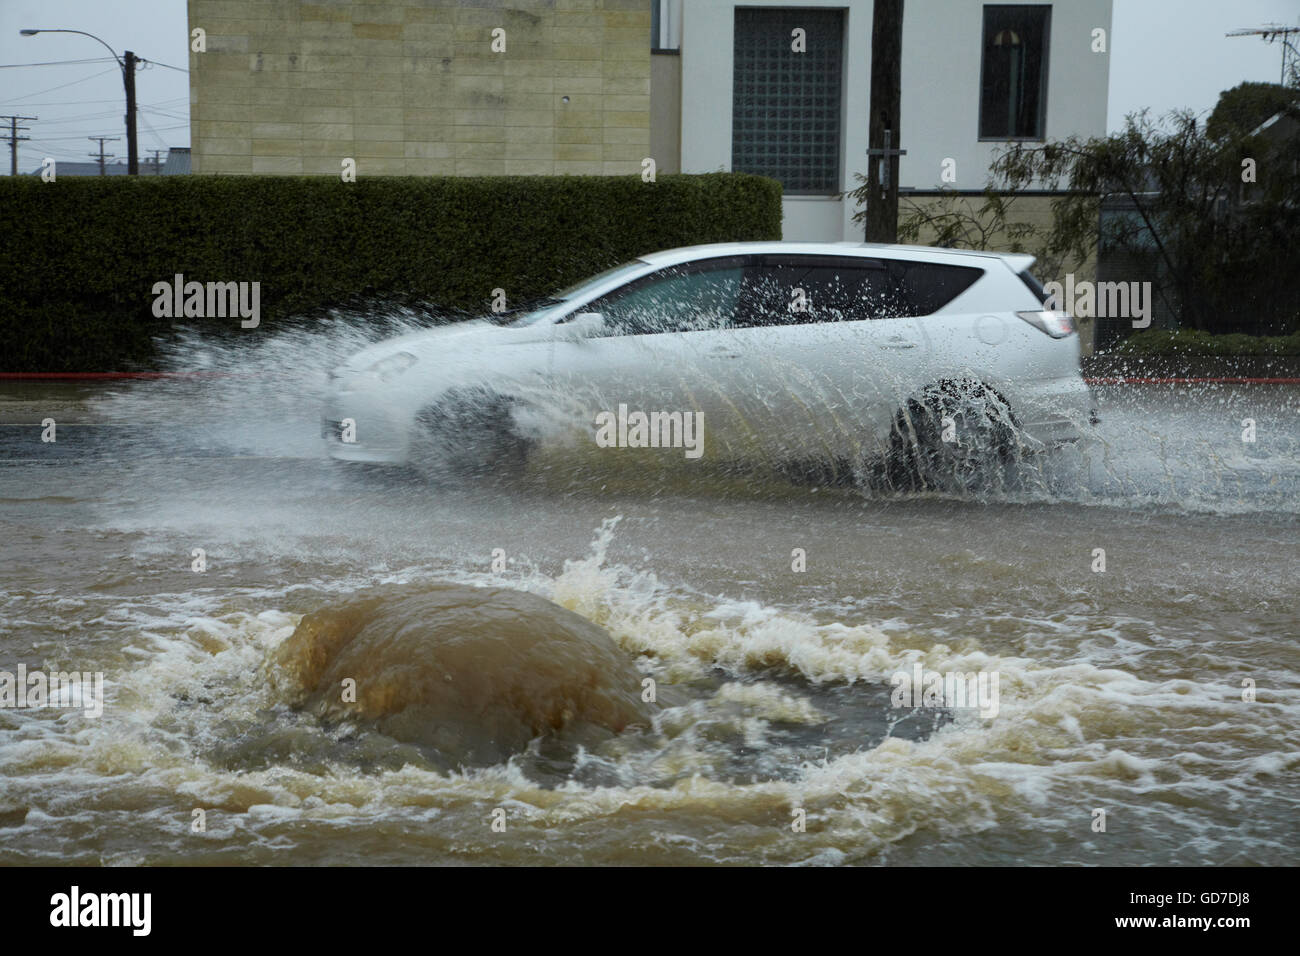 Flood waters pushing out of manhole cover, Forbury Road, St Clair, Dunedin, South Island, New Zealand - Stock Image